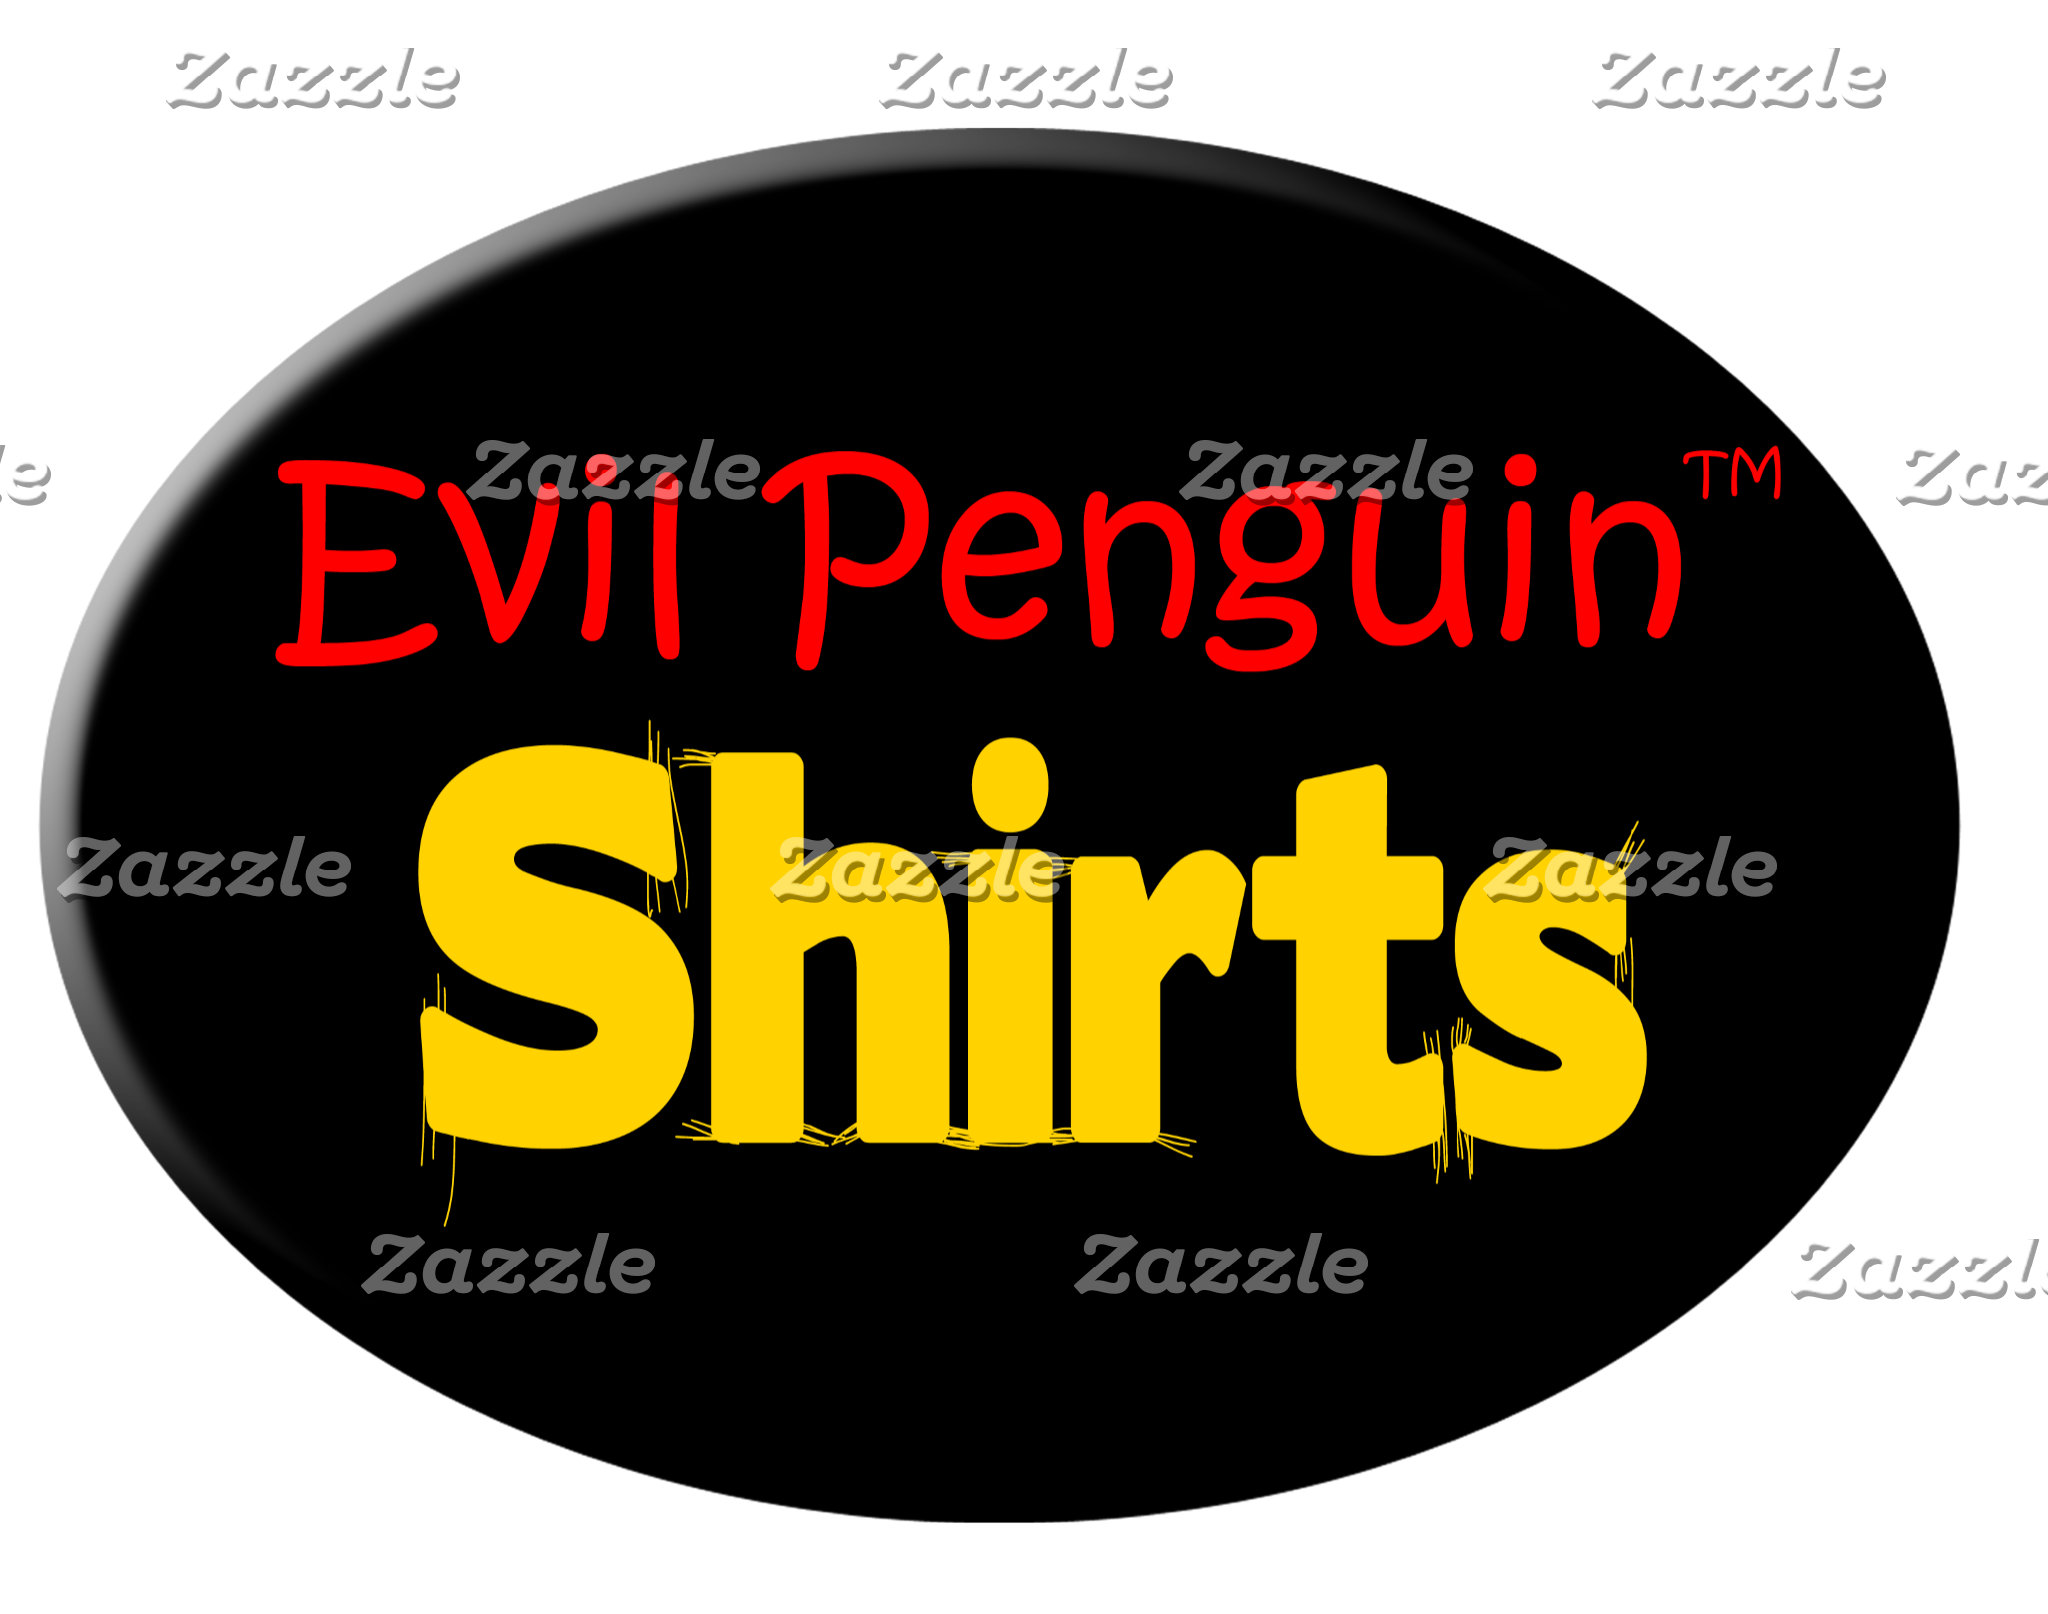 Evil Penguin Shirts